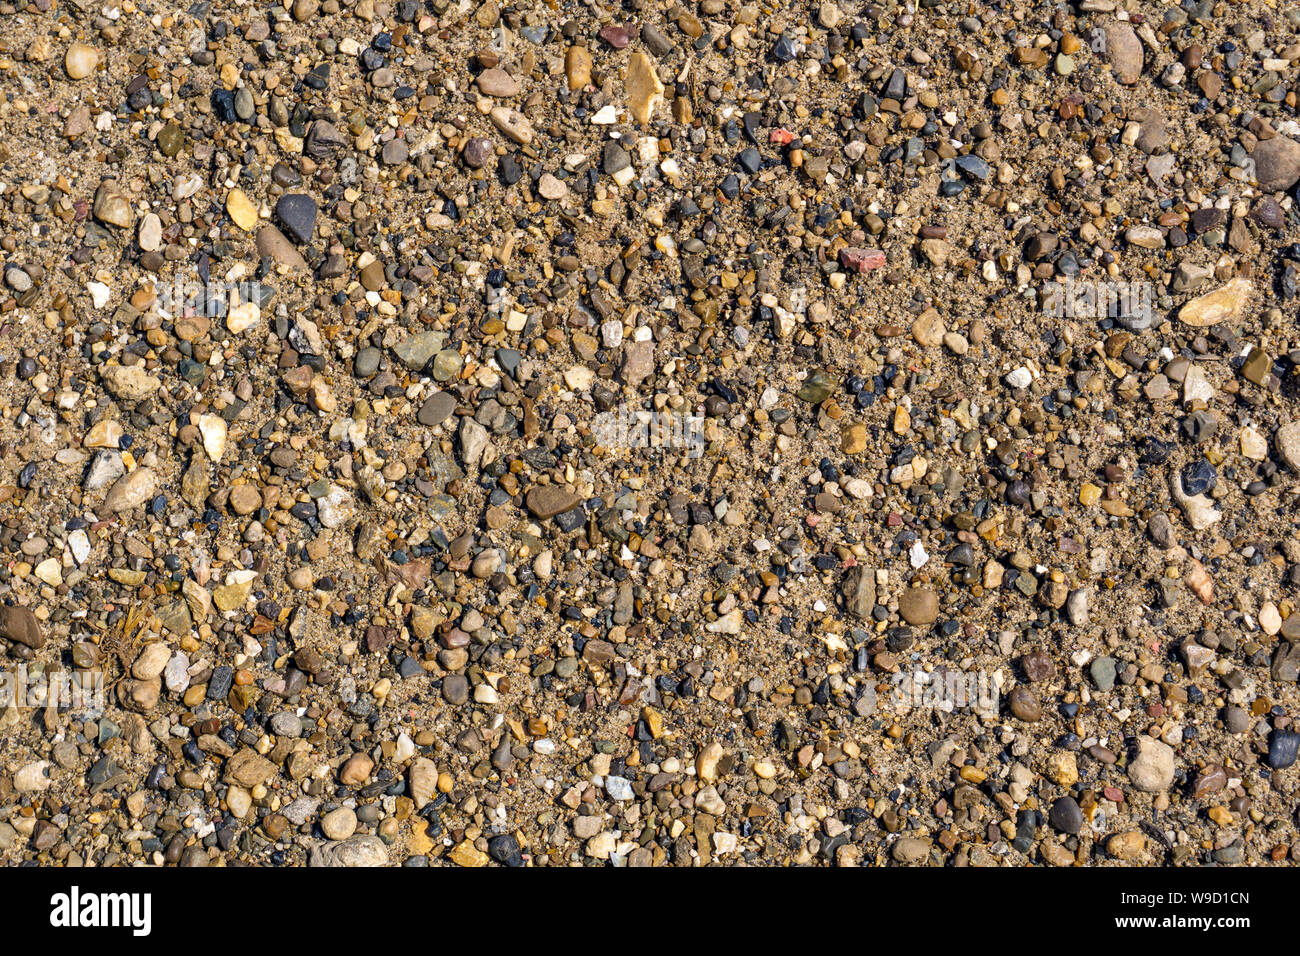 Background Texture Small Pebbles And Sand On The River Bank Stock Photo Alamy